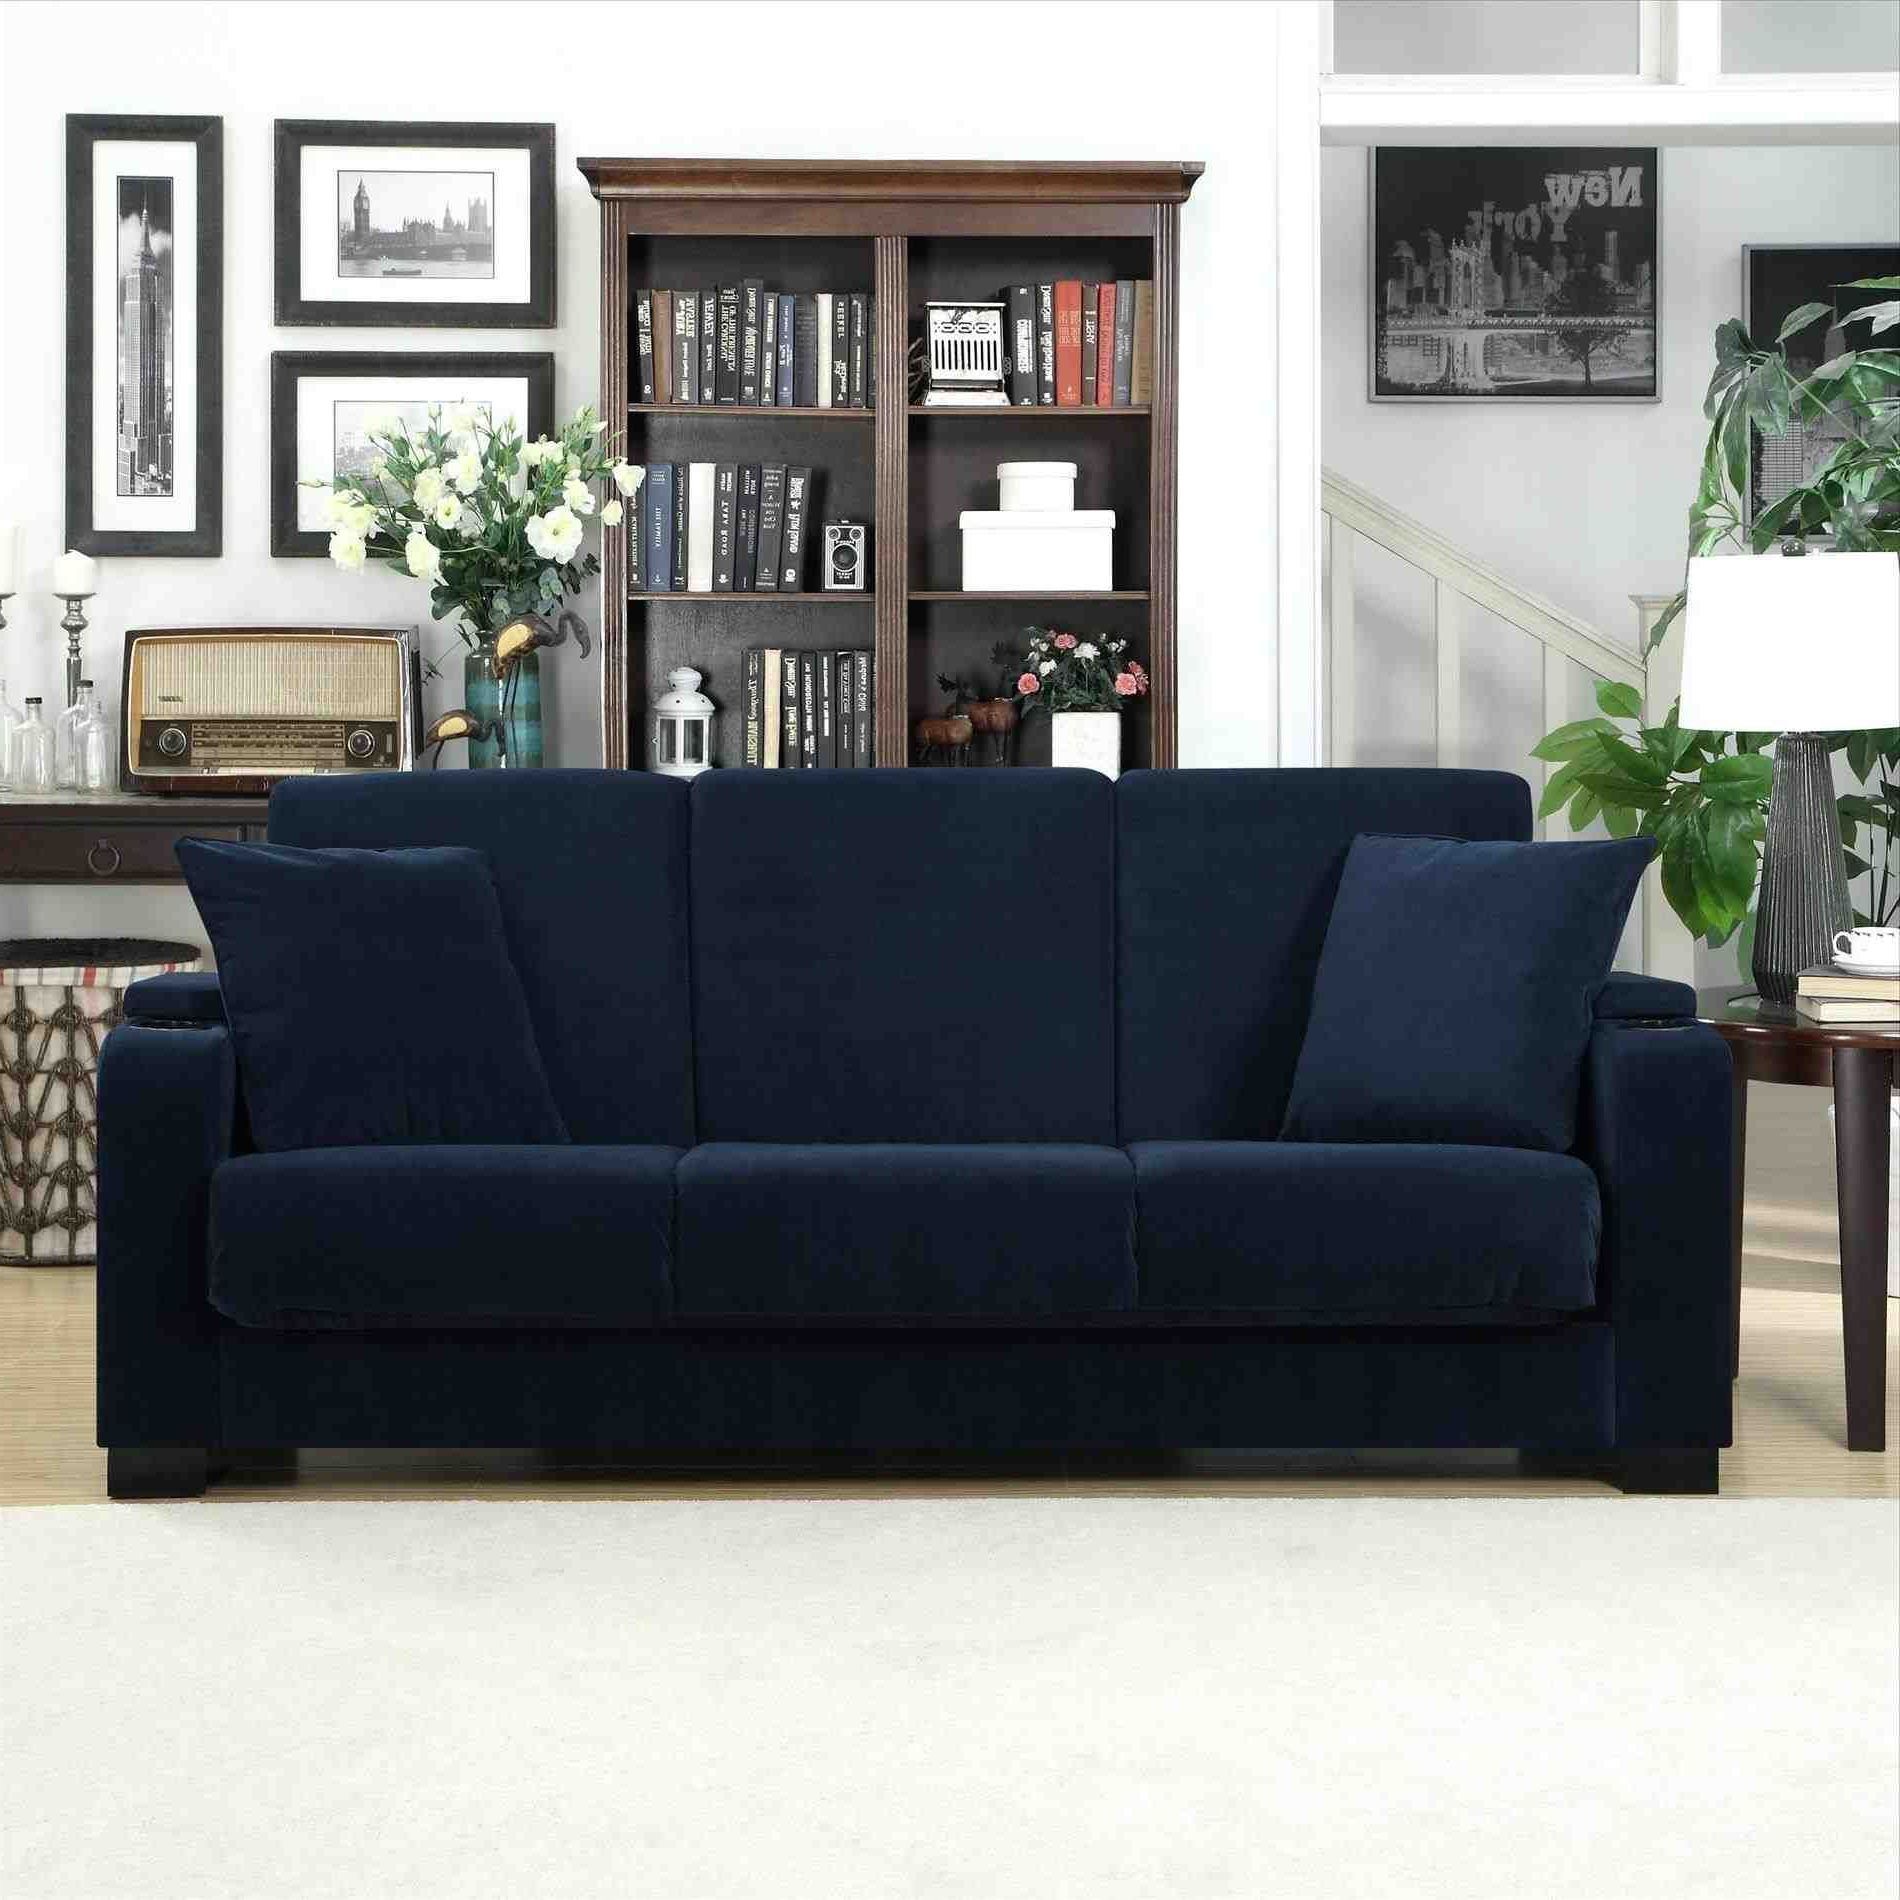 Cheap Sofa Deals Uk – Living Room Chairs Cheap Furniture Prices In Throughout Best And Newest Cheap Sofa Chairs (View 8 of 20)